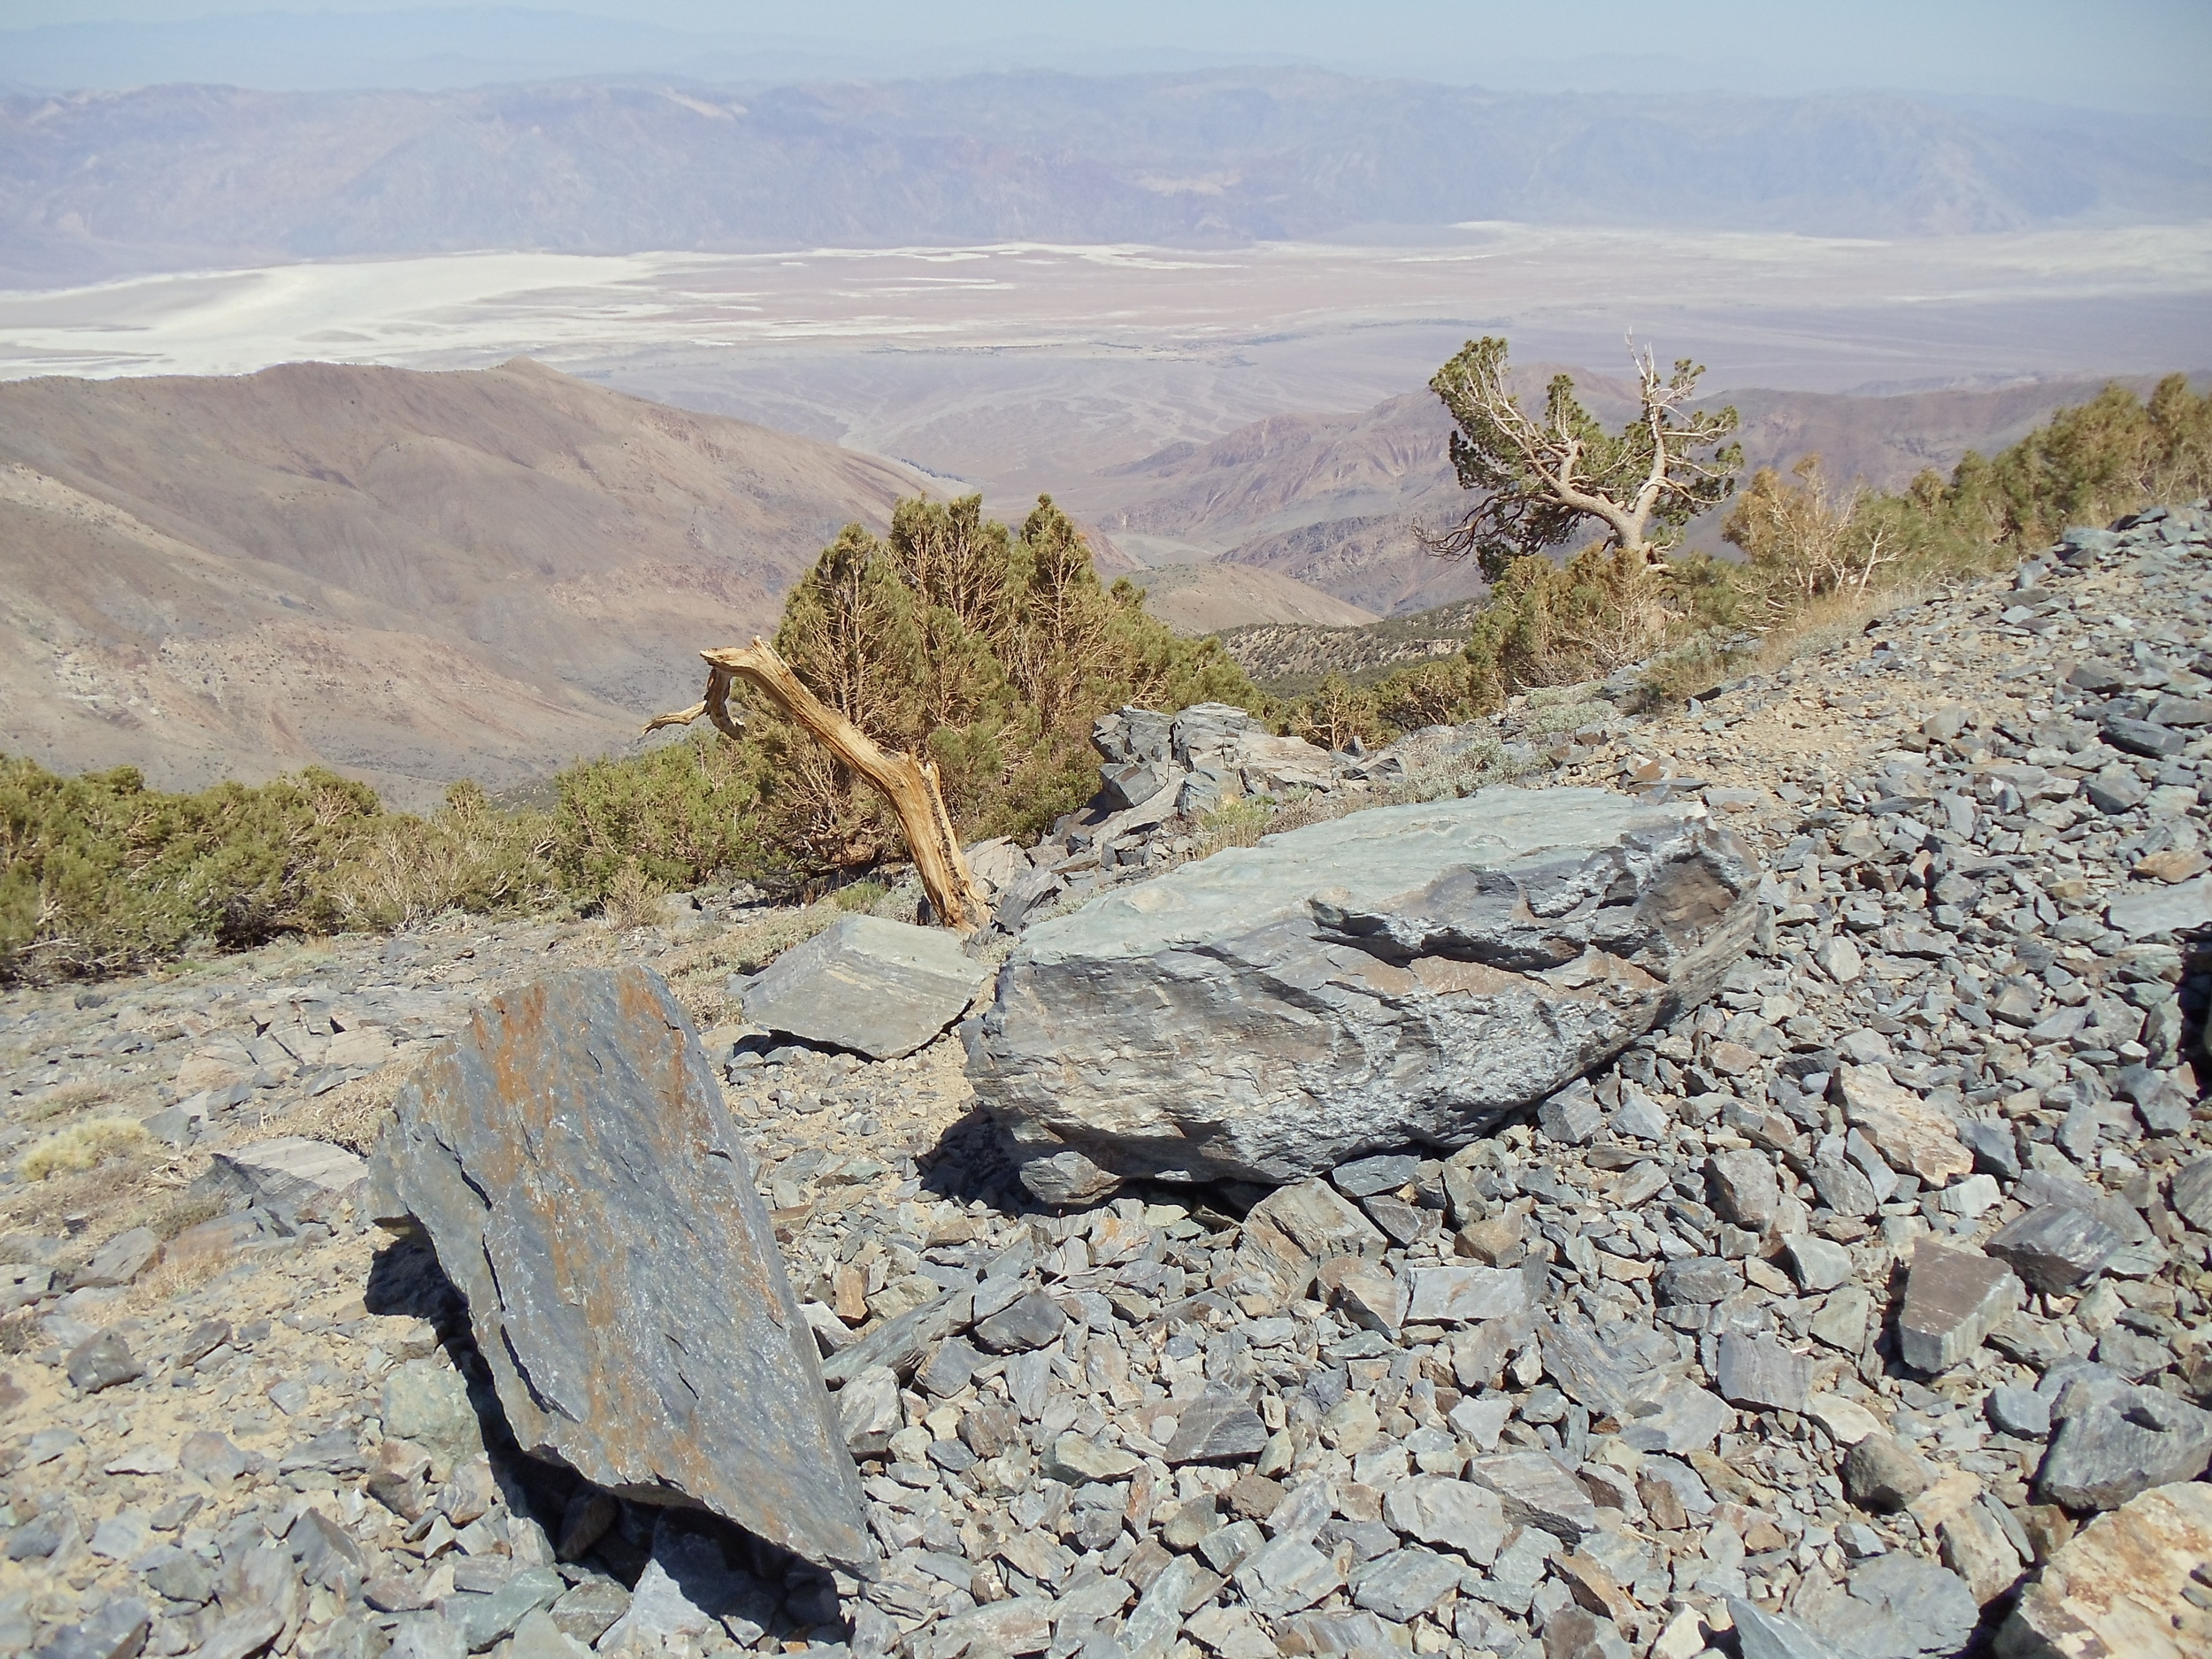 Looking into Death Valley from the Fire Access road on Rogers' Peak